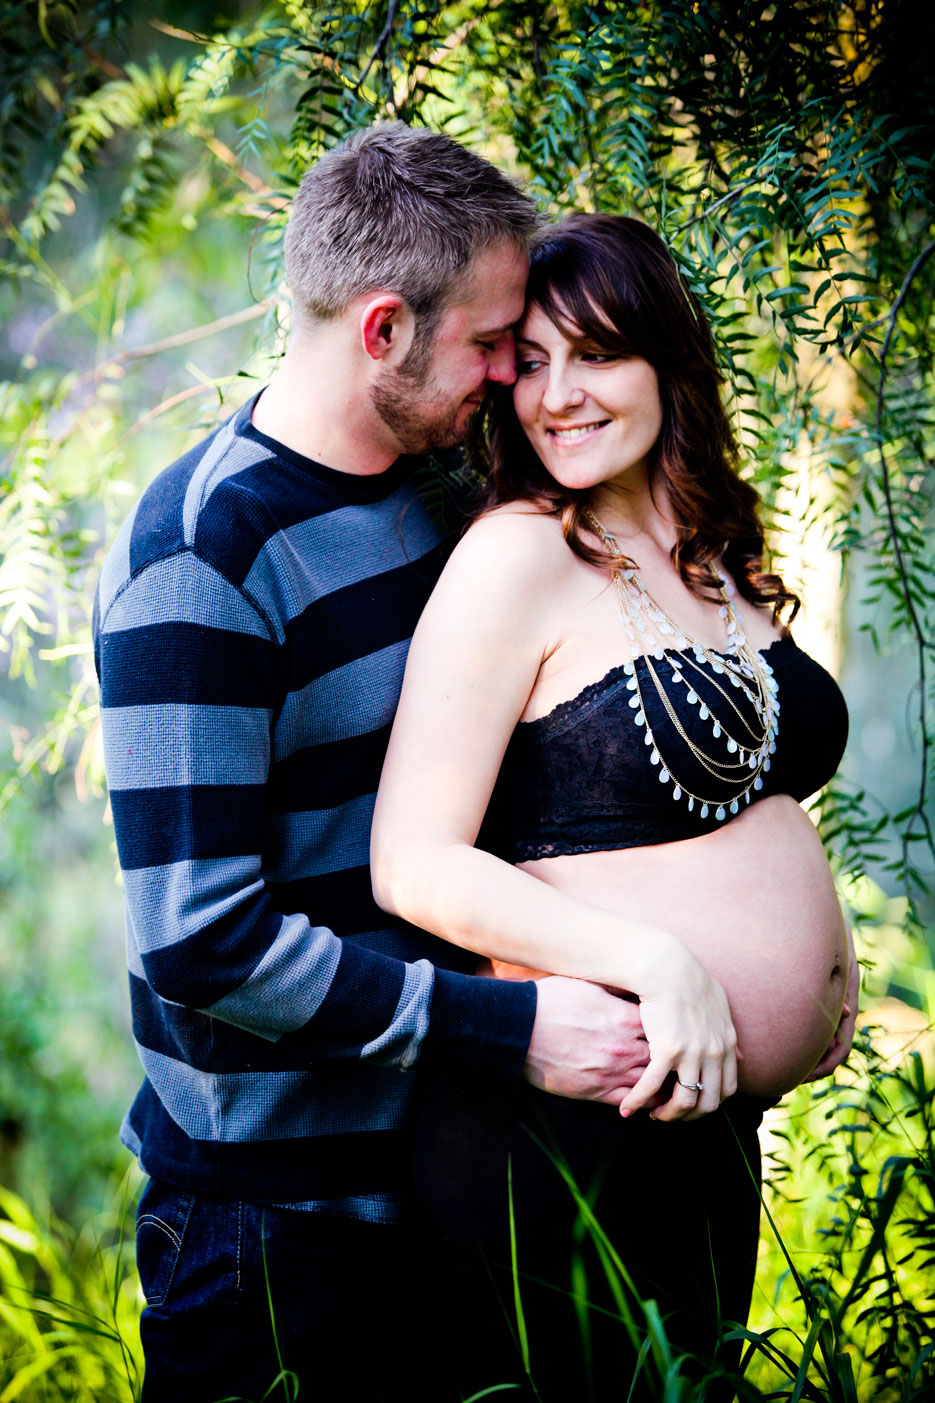 Our Pregnancy 94 Pregnancy Shoot in the Park, Orange County